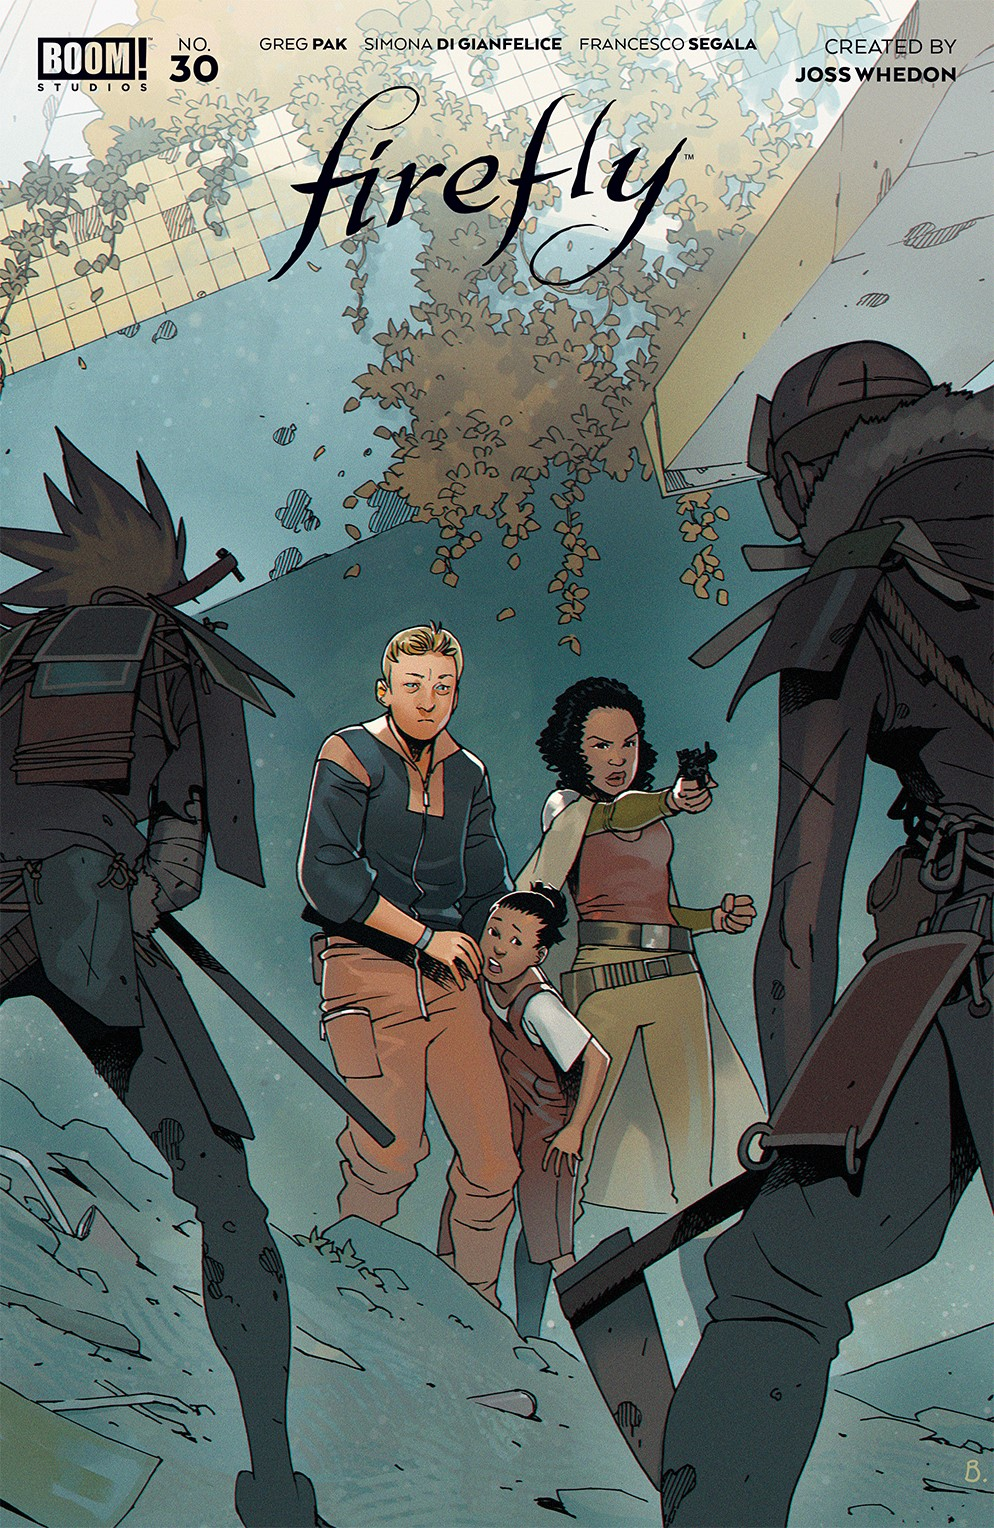 Firefly_030_Cover_A_Main ComicList Previews: FIREFLY #30